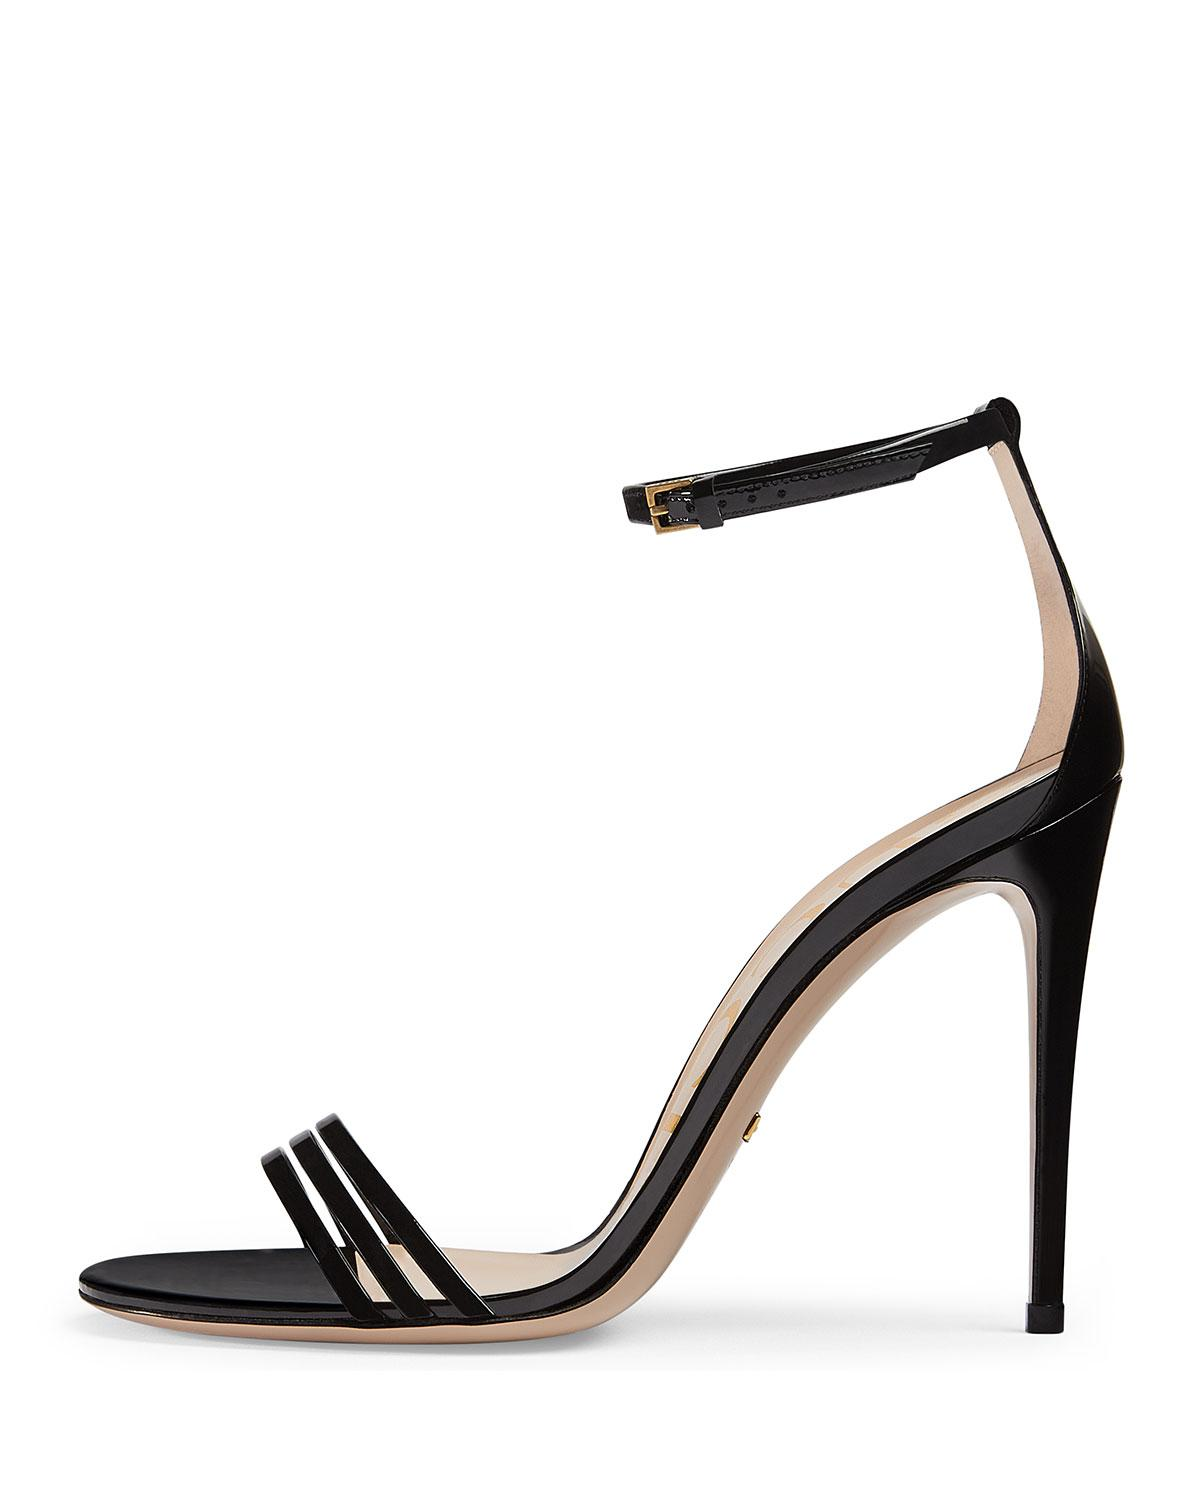 0fe8a4c89eb4 Lyst - Gucci Ilse Bow-embellished Leather Sandals in Black